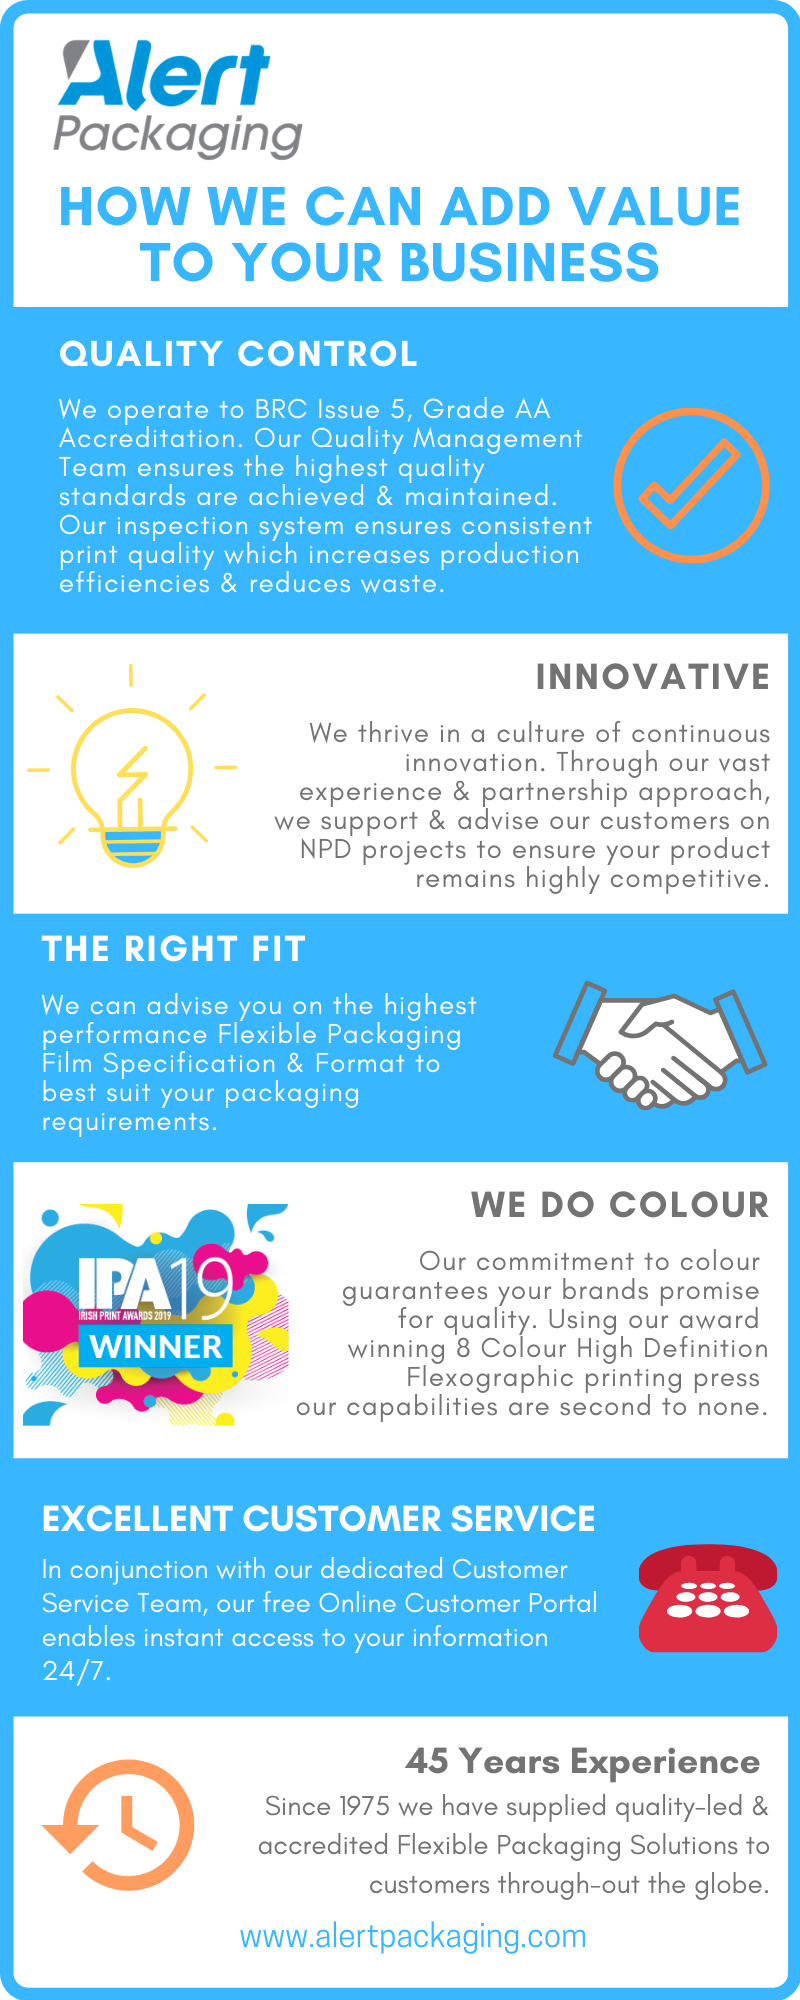 Alert Packaging - How We Can Add Value to Your Business